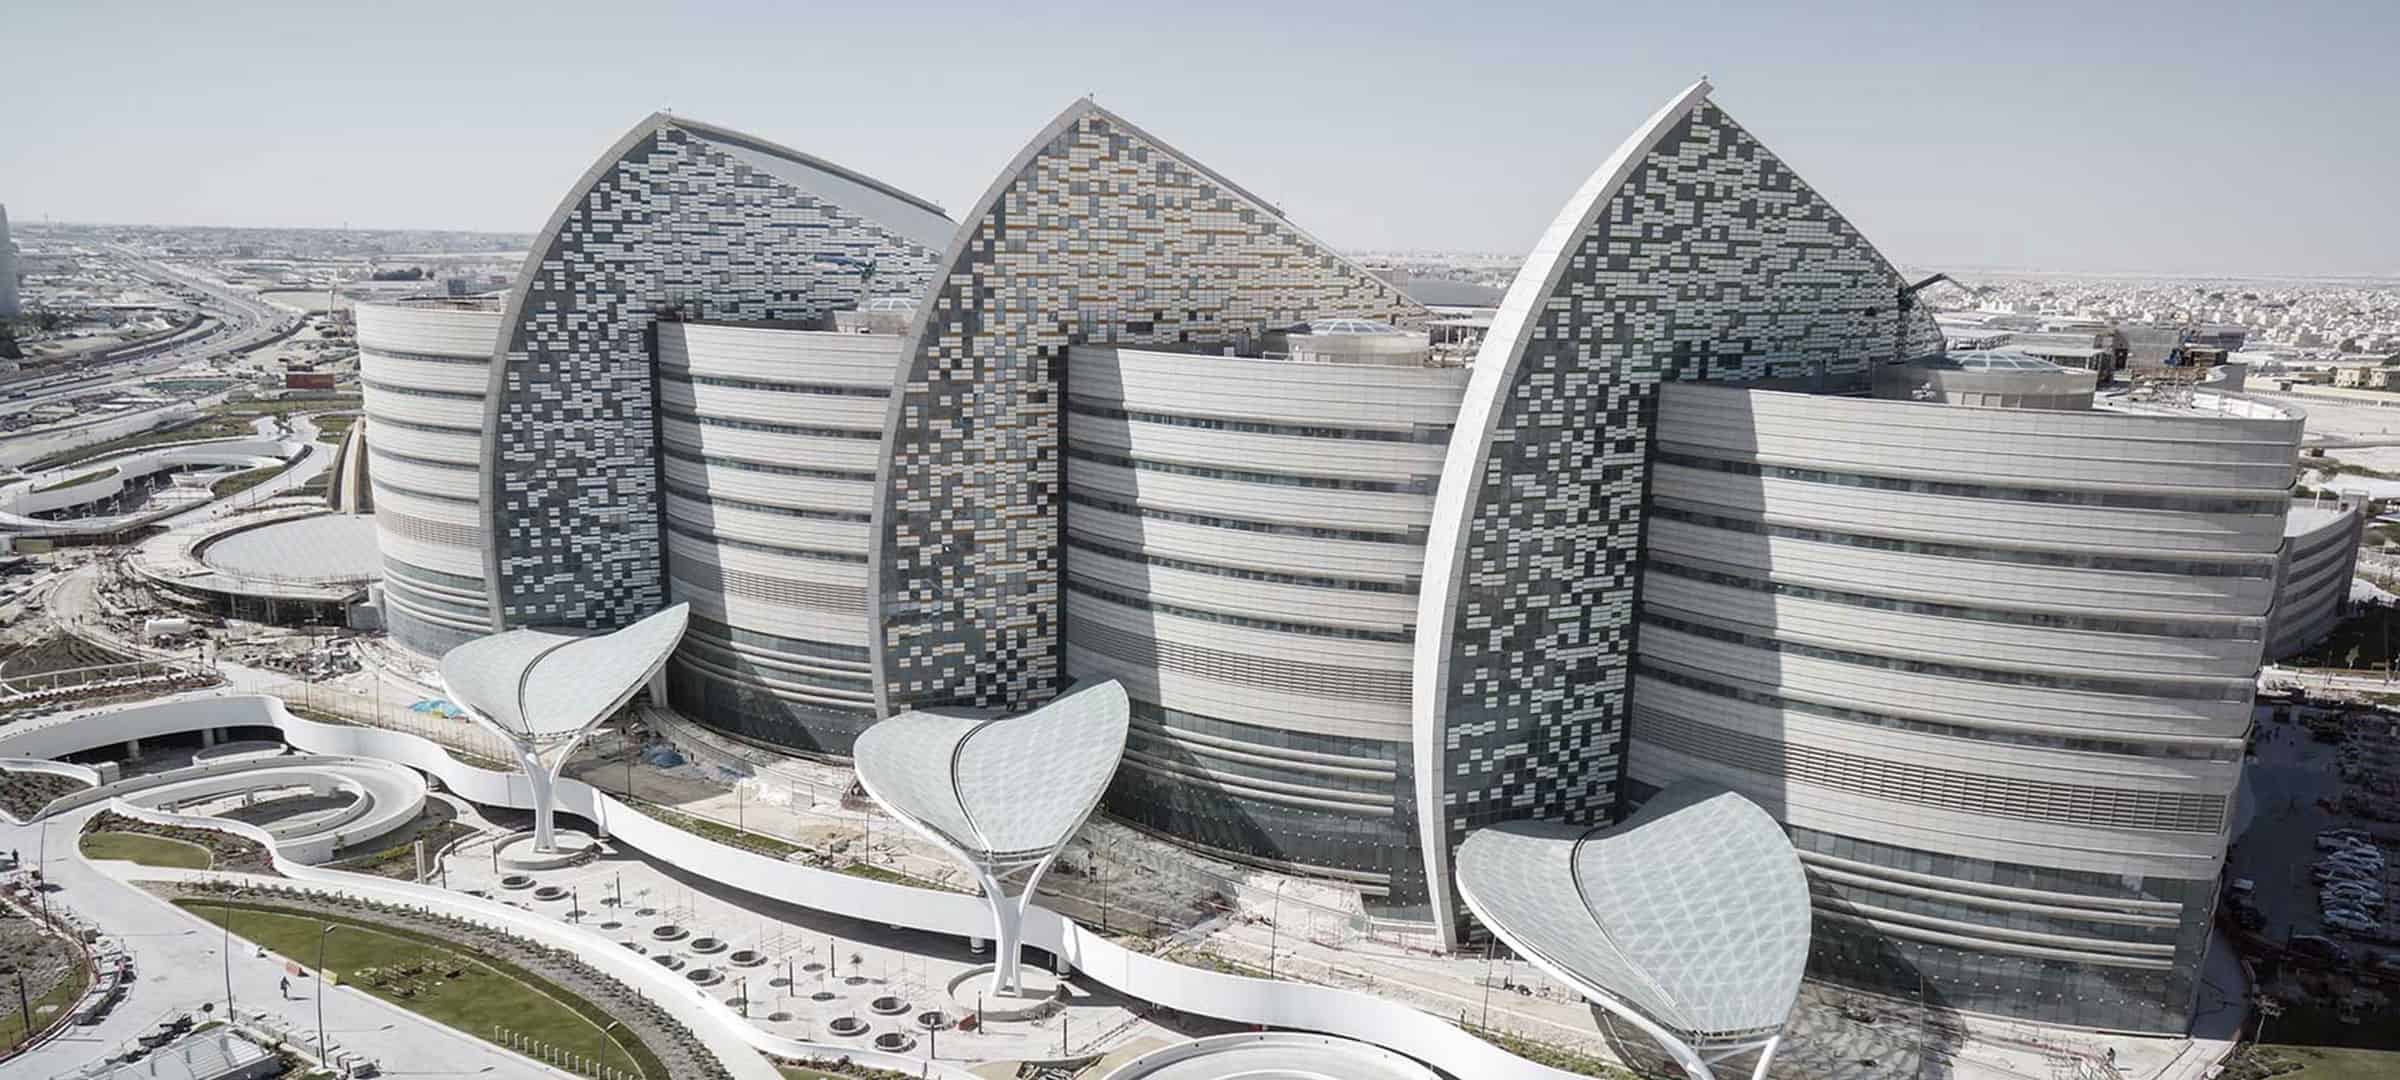 Sidra Medical Research Center - Surespan Case Study